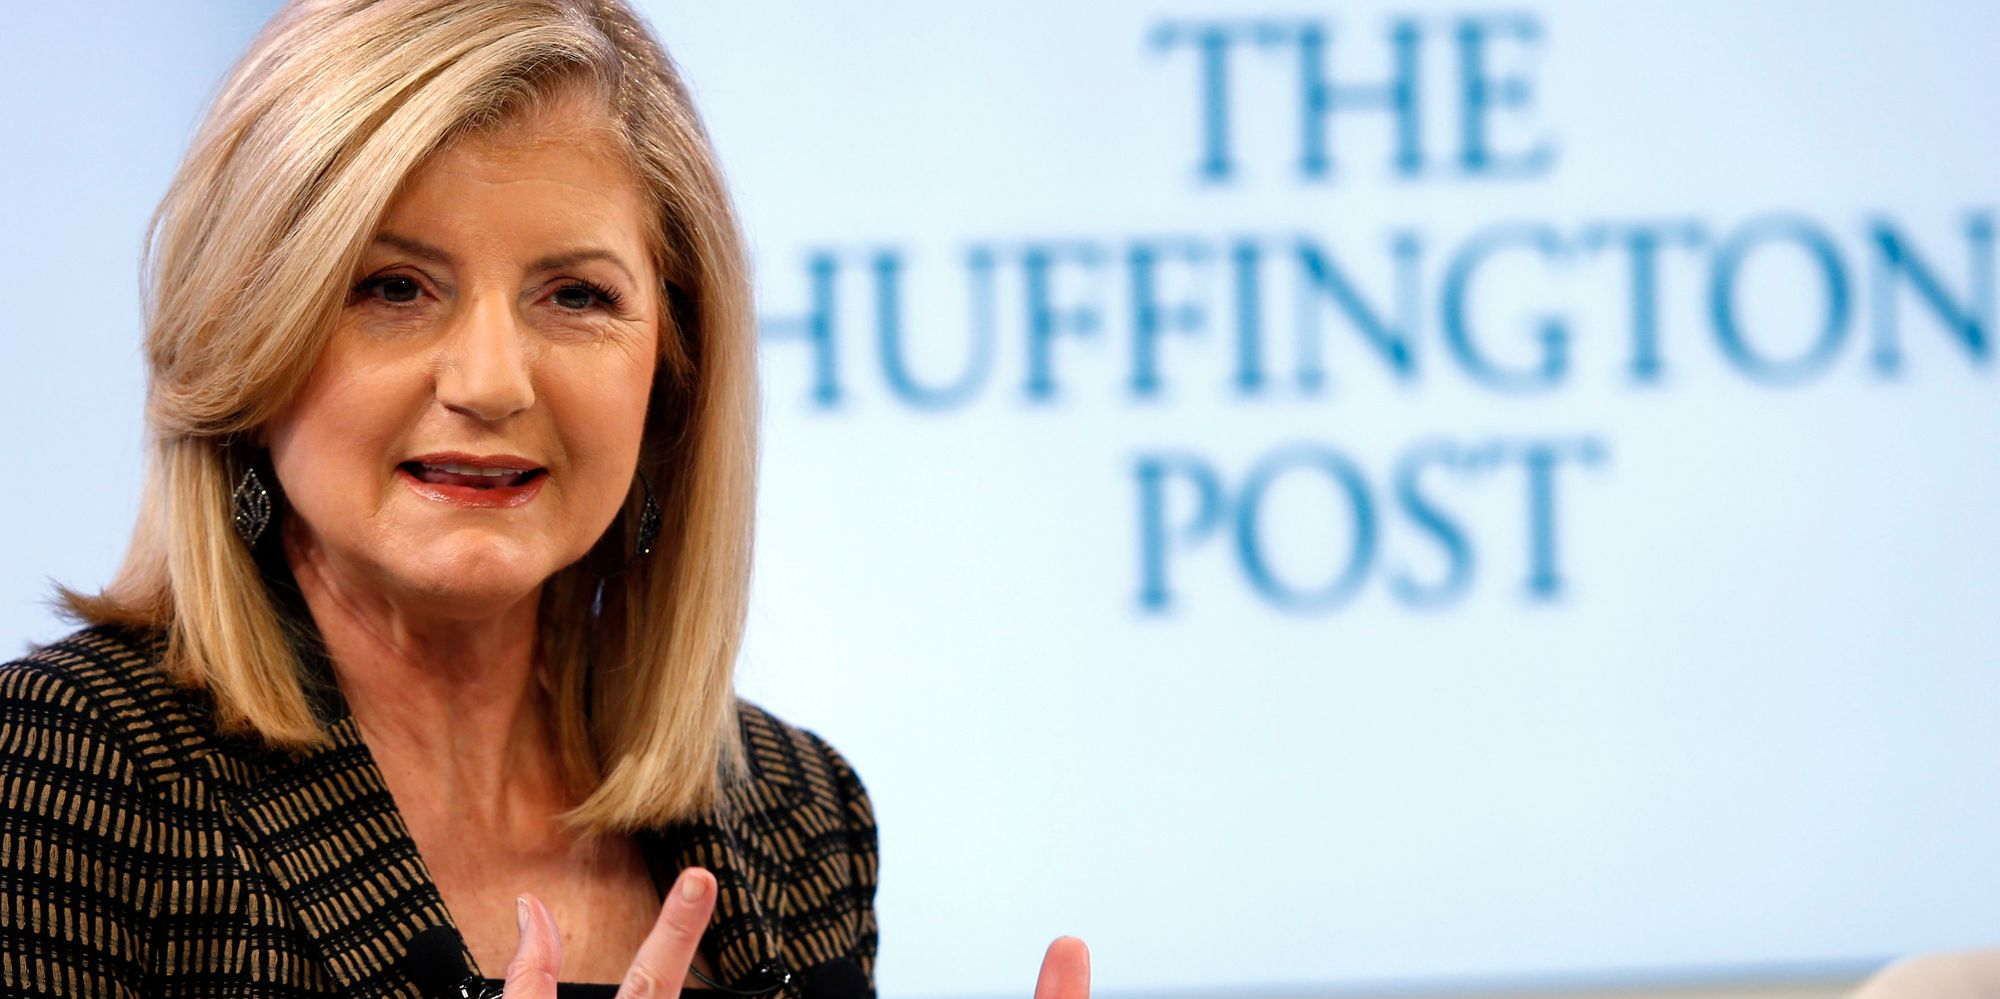 Arianna Huffington Will Leave The Huffington Post To Build Health And Wellness Site